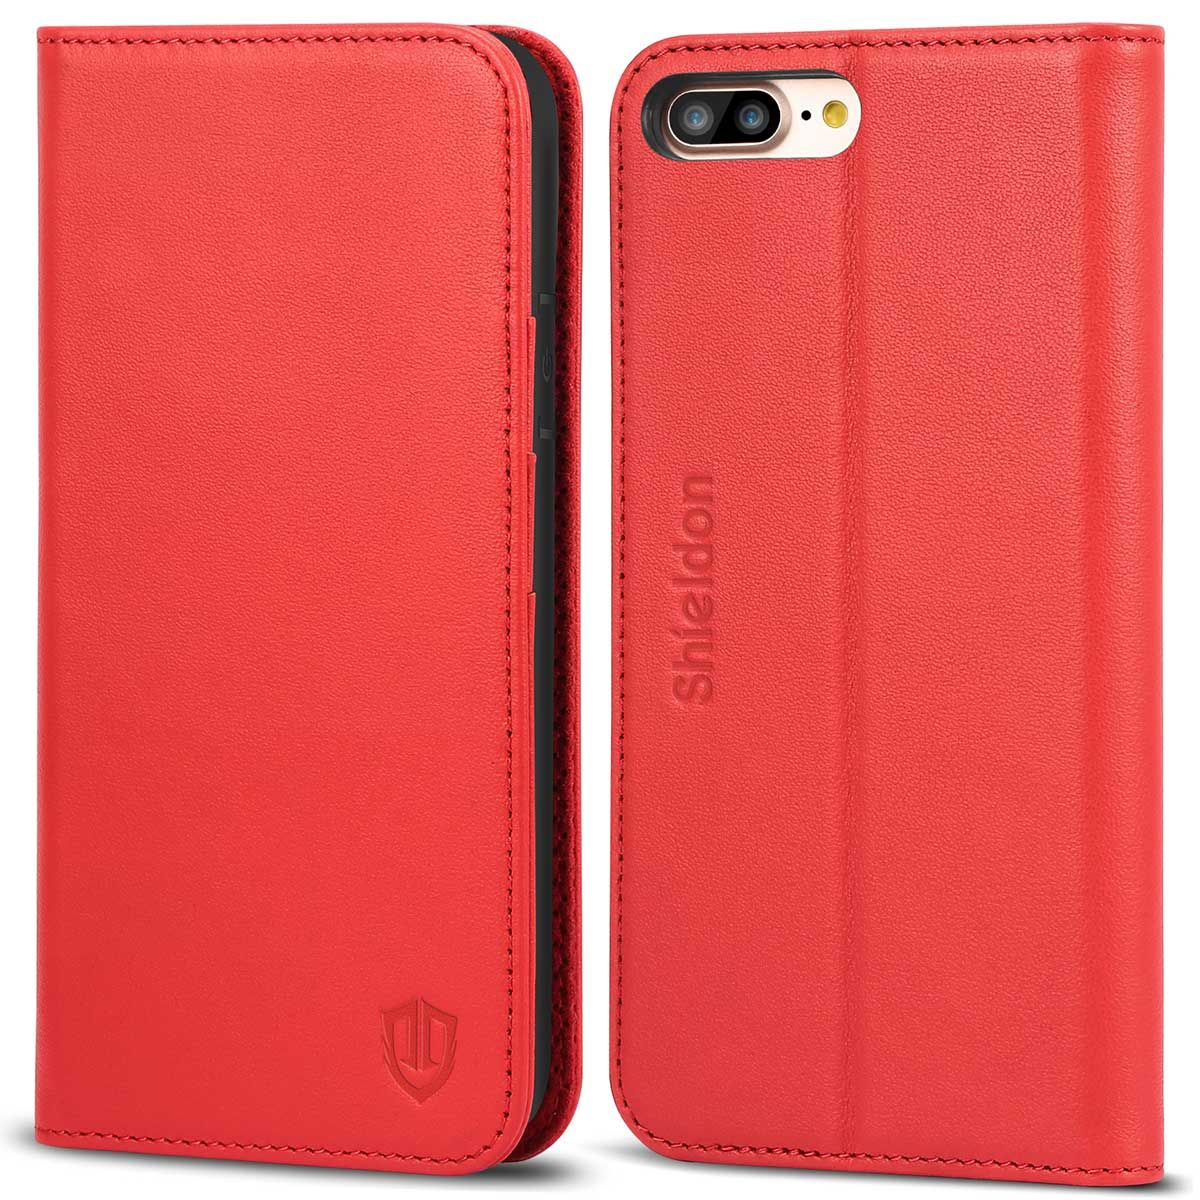 c1fa3dd27be SHIELDON iPhone 8 Plus Wallet Case - Red color